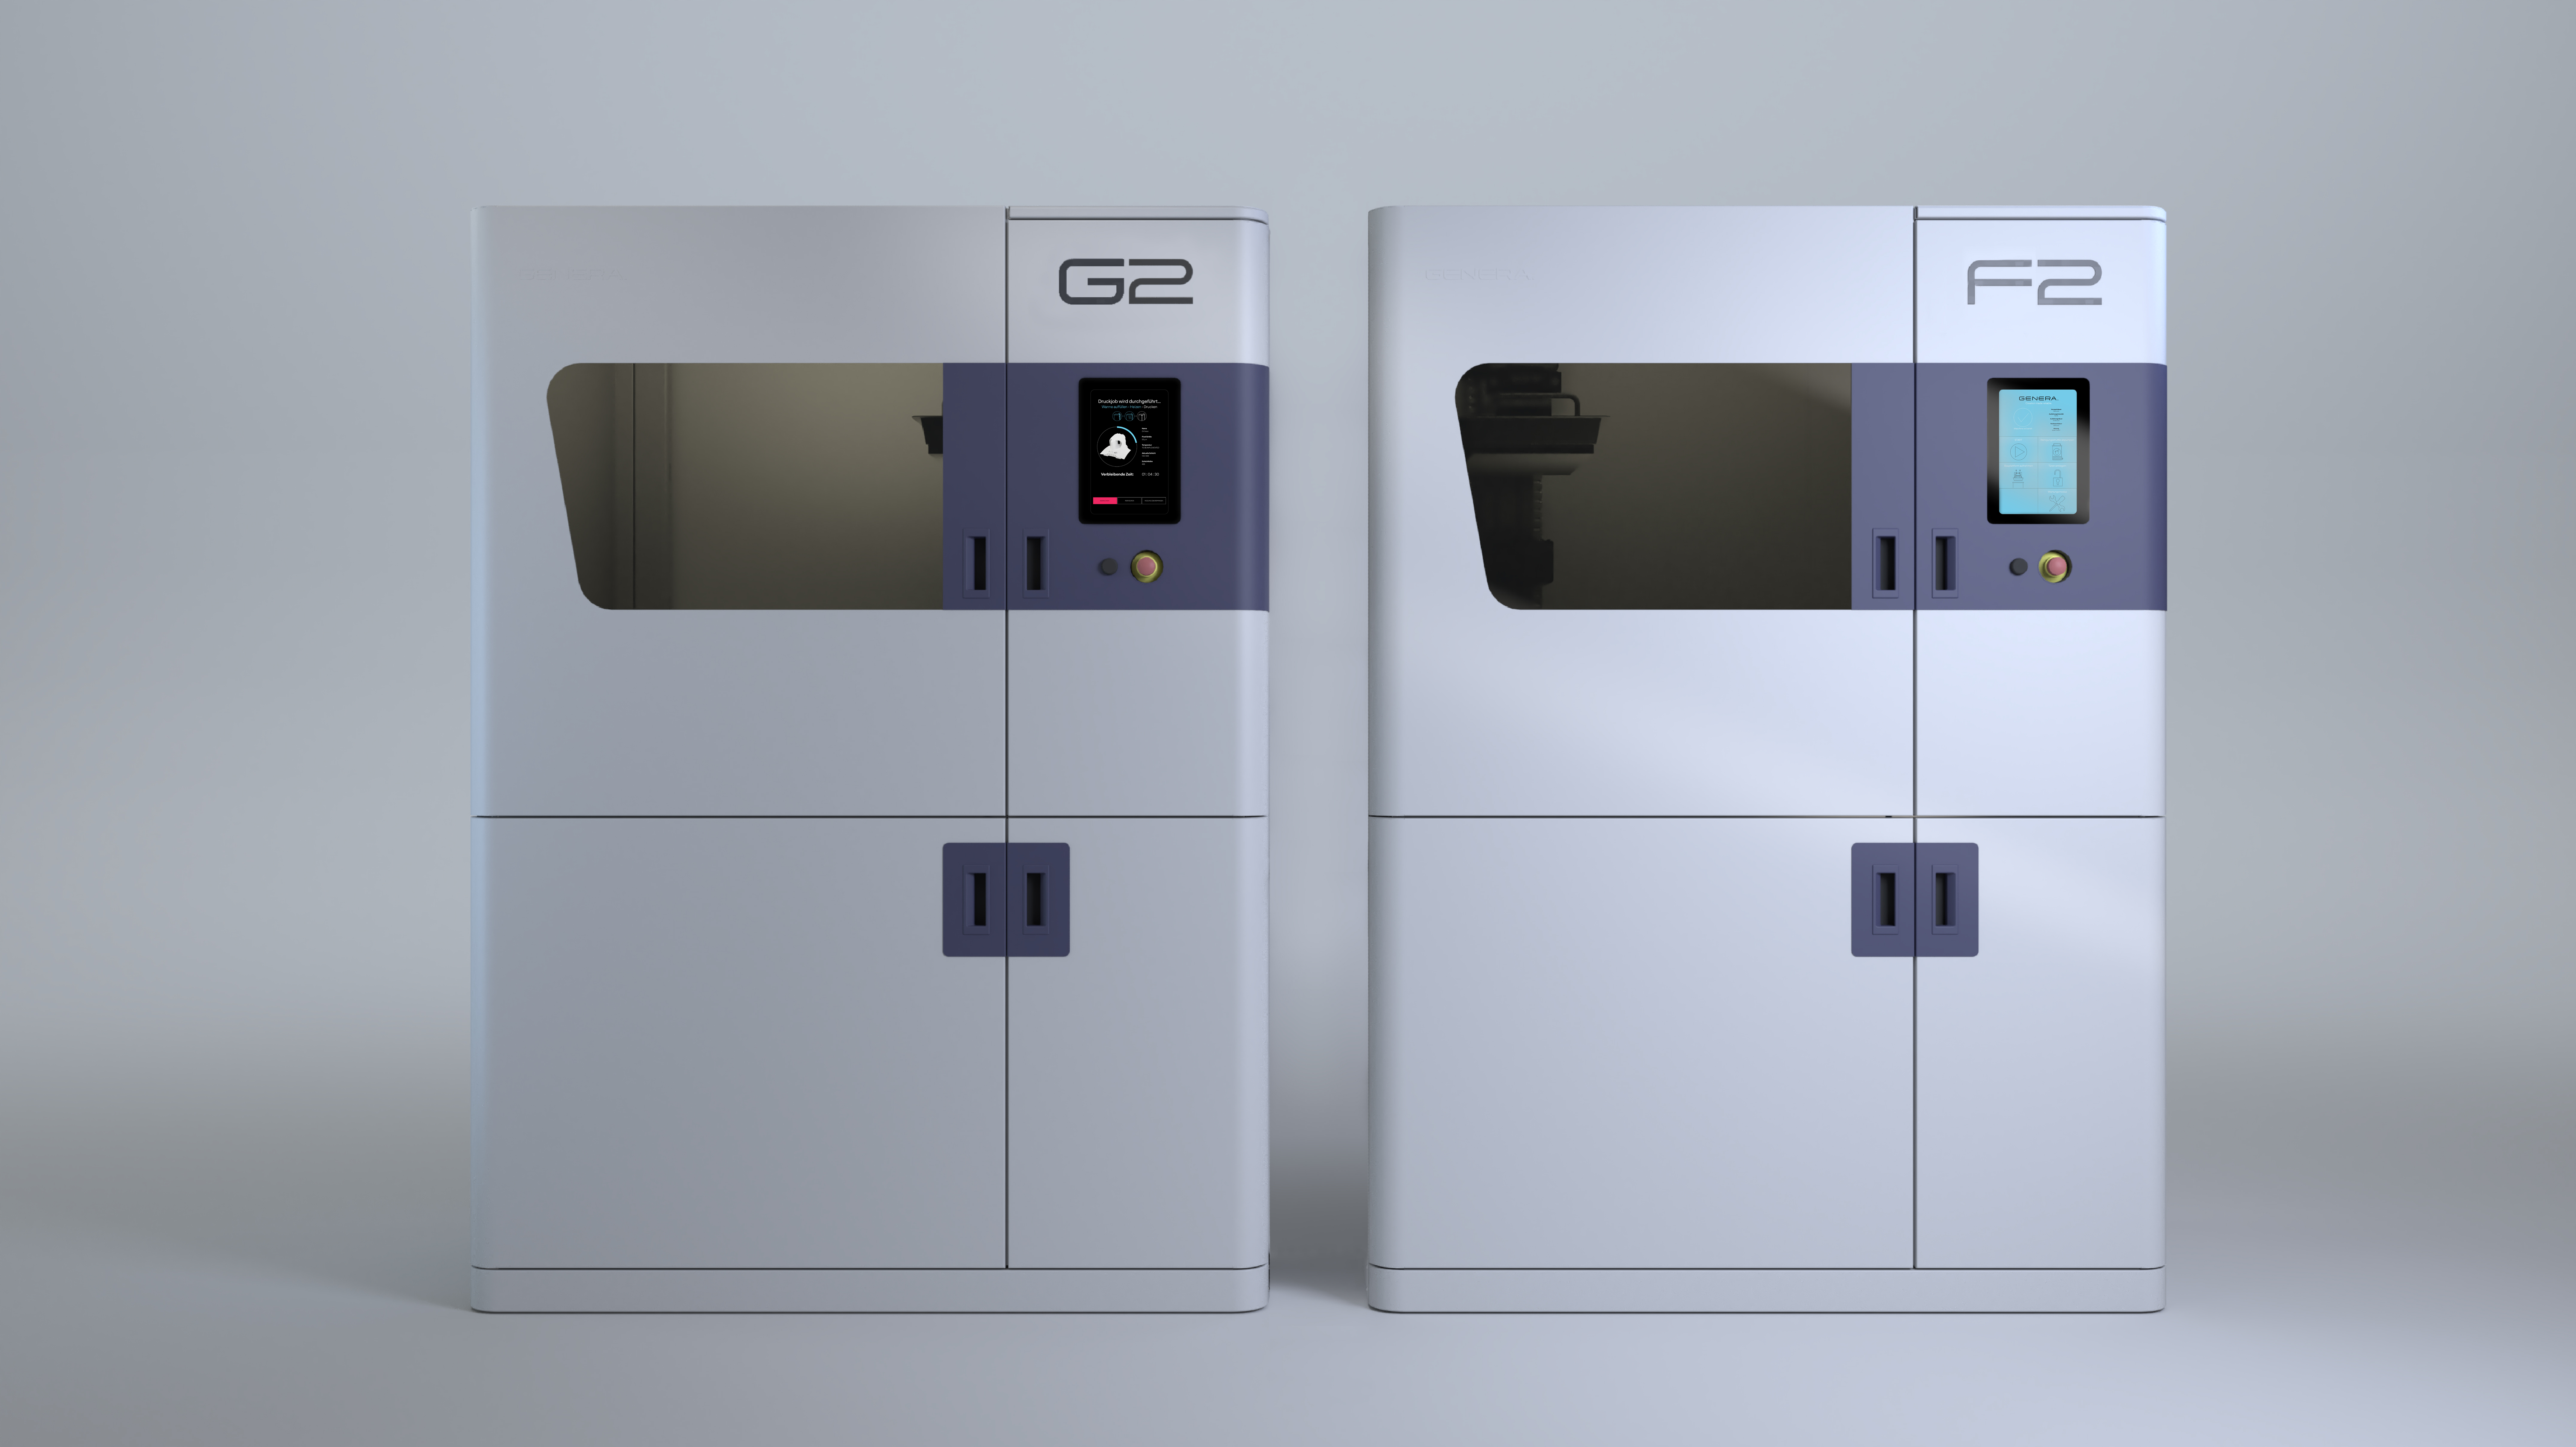 Genera's new systems feature its shuttle technology, which allow parts to be produced and post-processed without needing to be handled. Image via Genera.